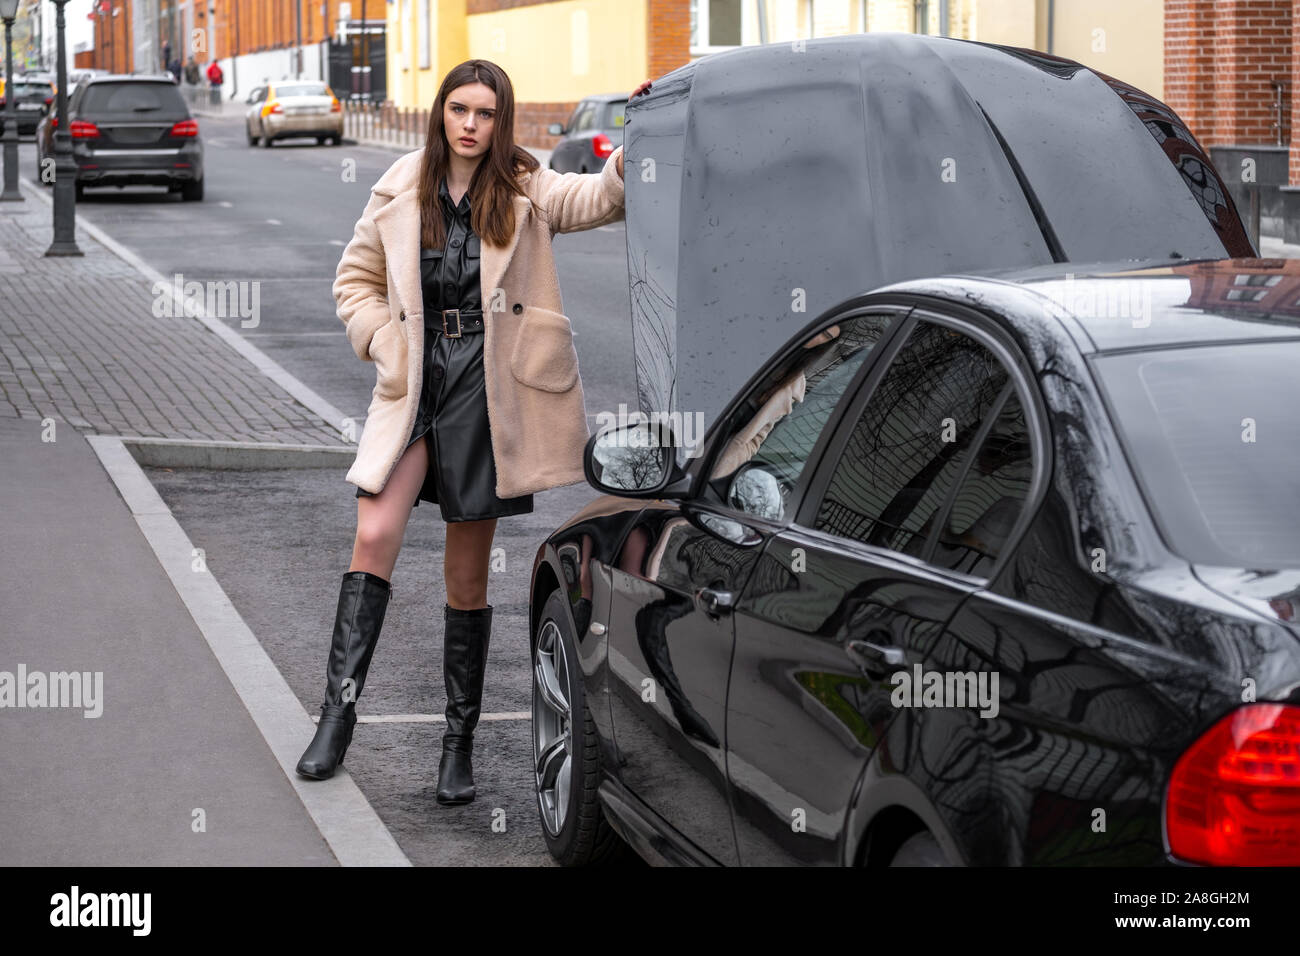 Woman waiting support near her broken car. a young woman stands near her broken car and does not know what to do with it.The car opened the hood. Stock Photo